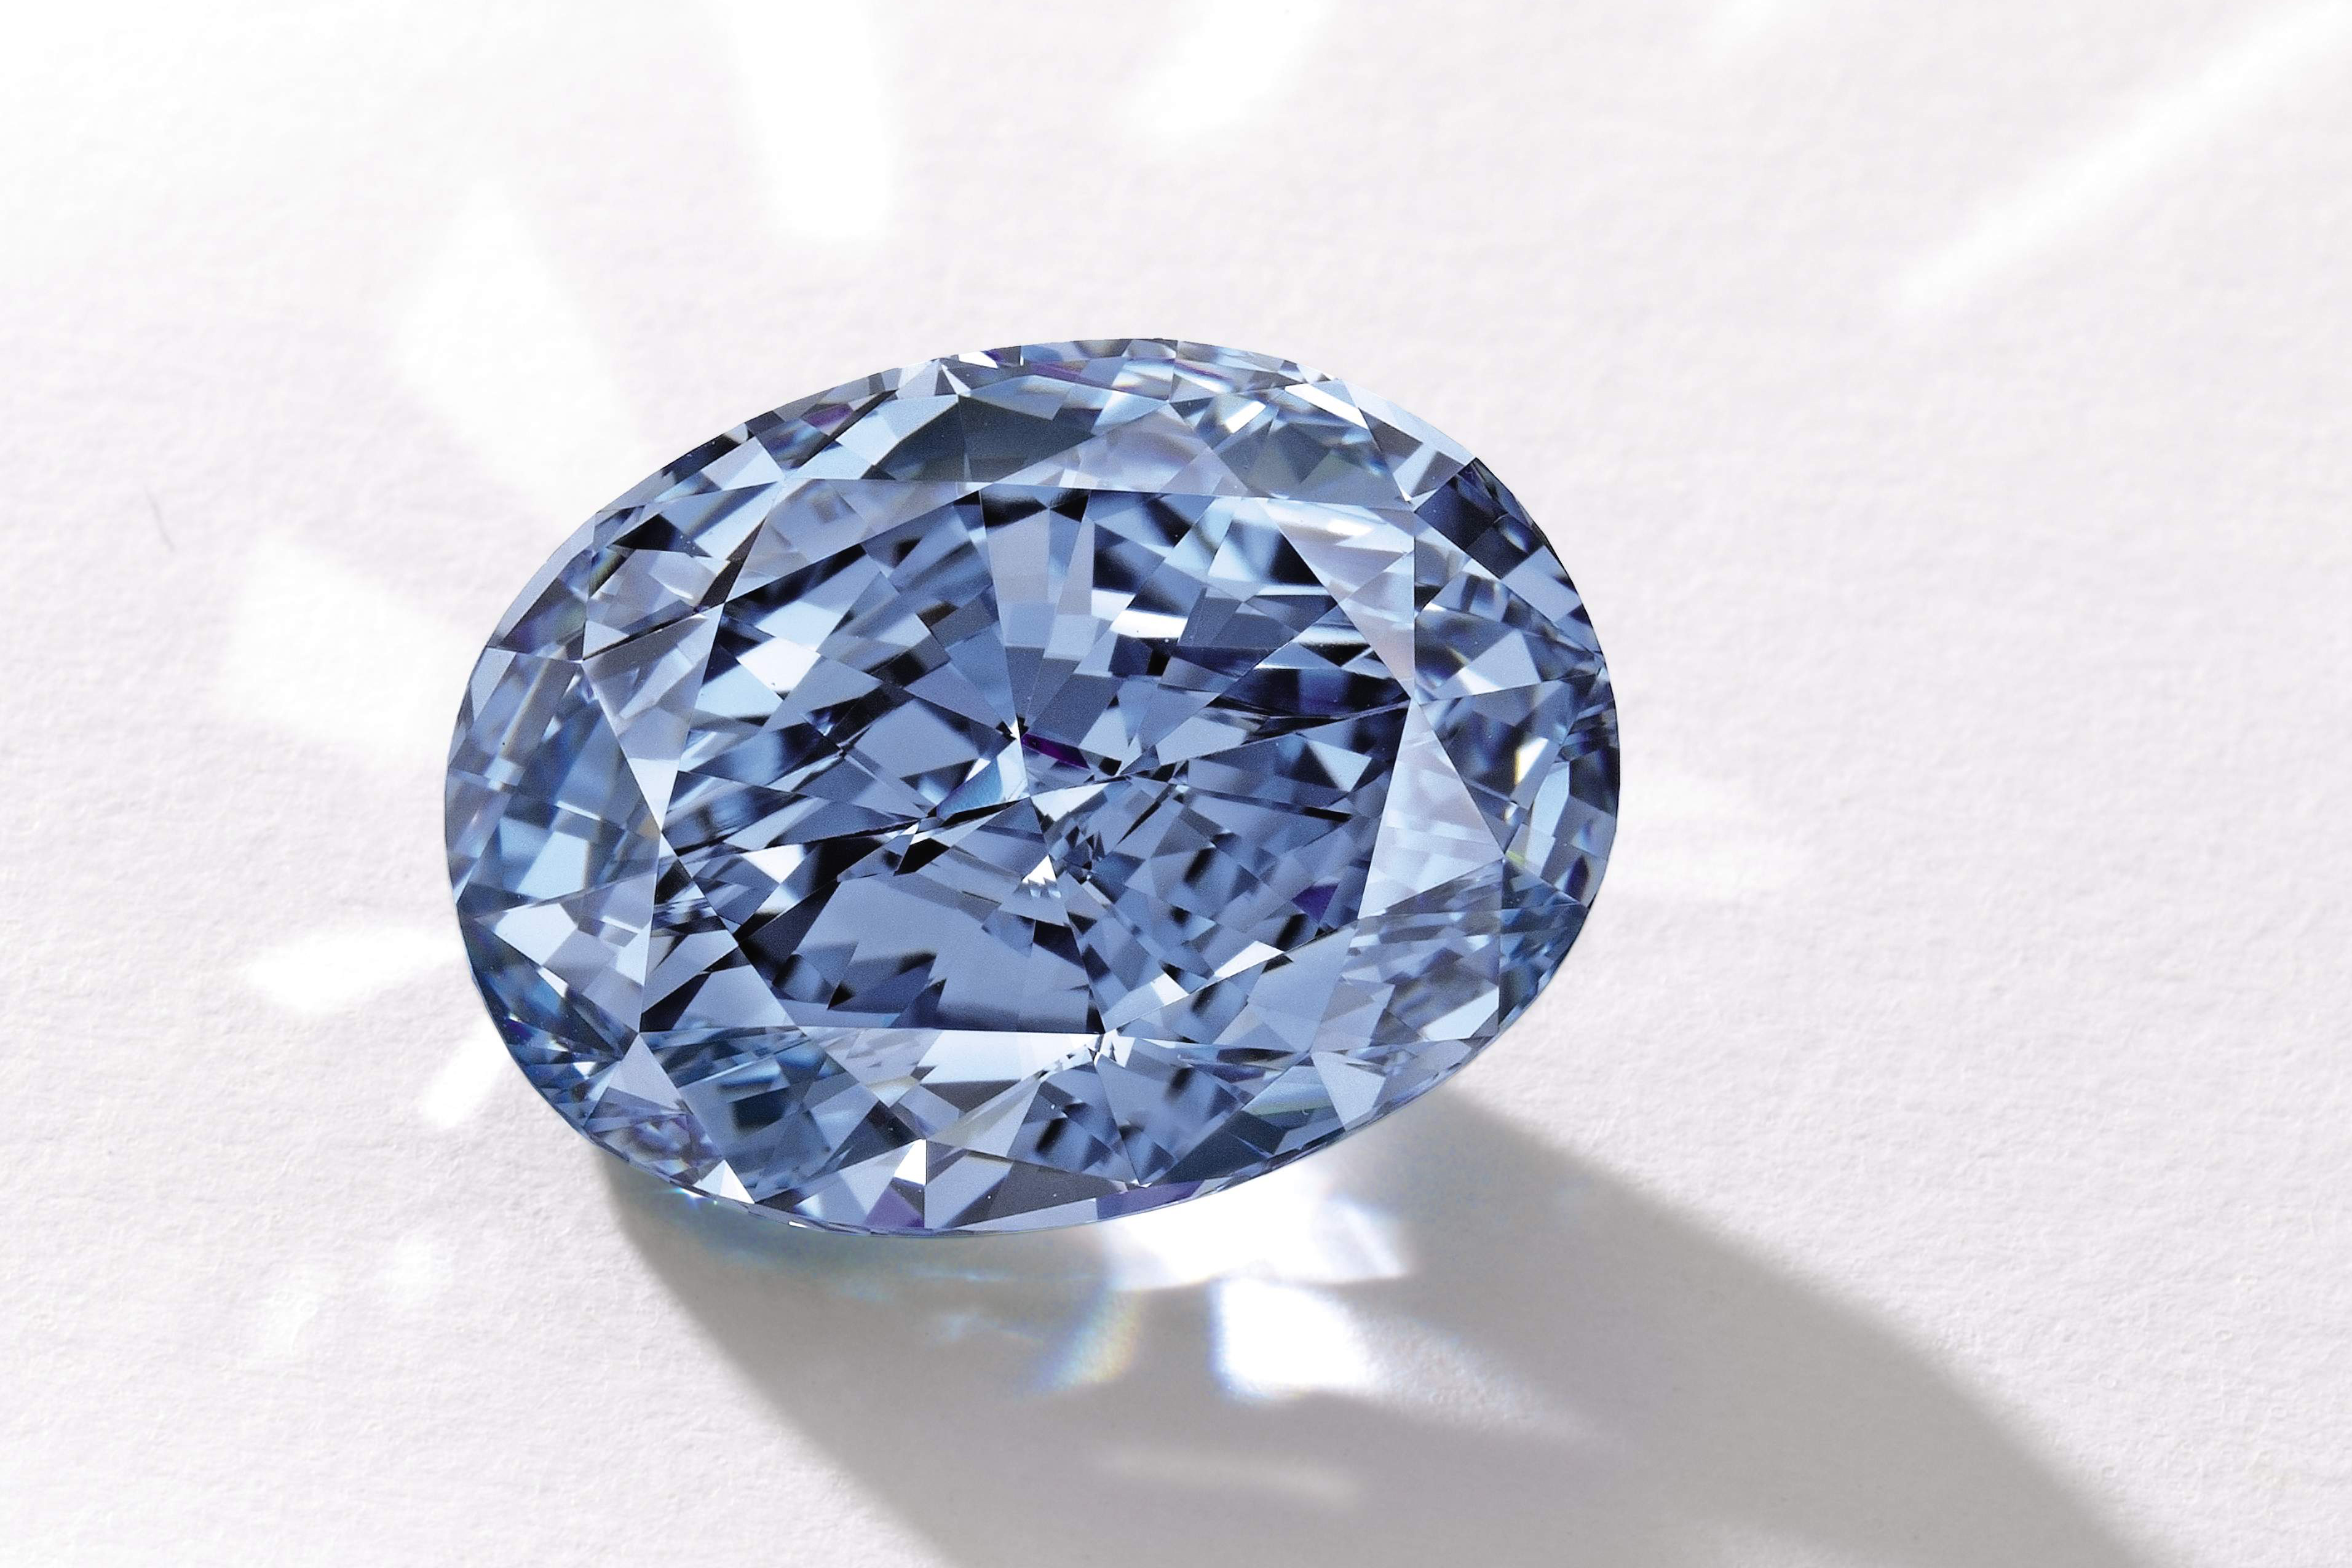 This photo provided by Sotheby's shows a 10.10-carat oval, internally flawless blue diamond. The 'De Beers Millennium Jewel 4' is largest oval fancy vivid blue diamond ever to appear at auction.